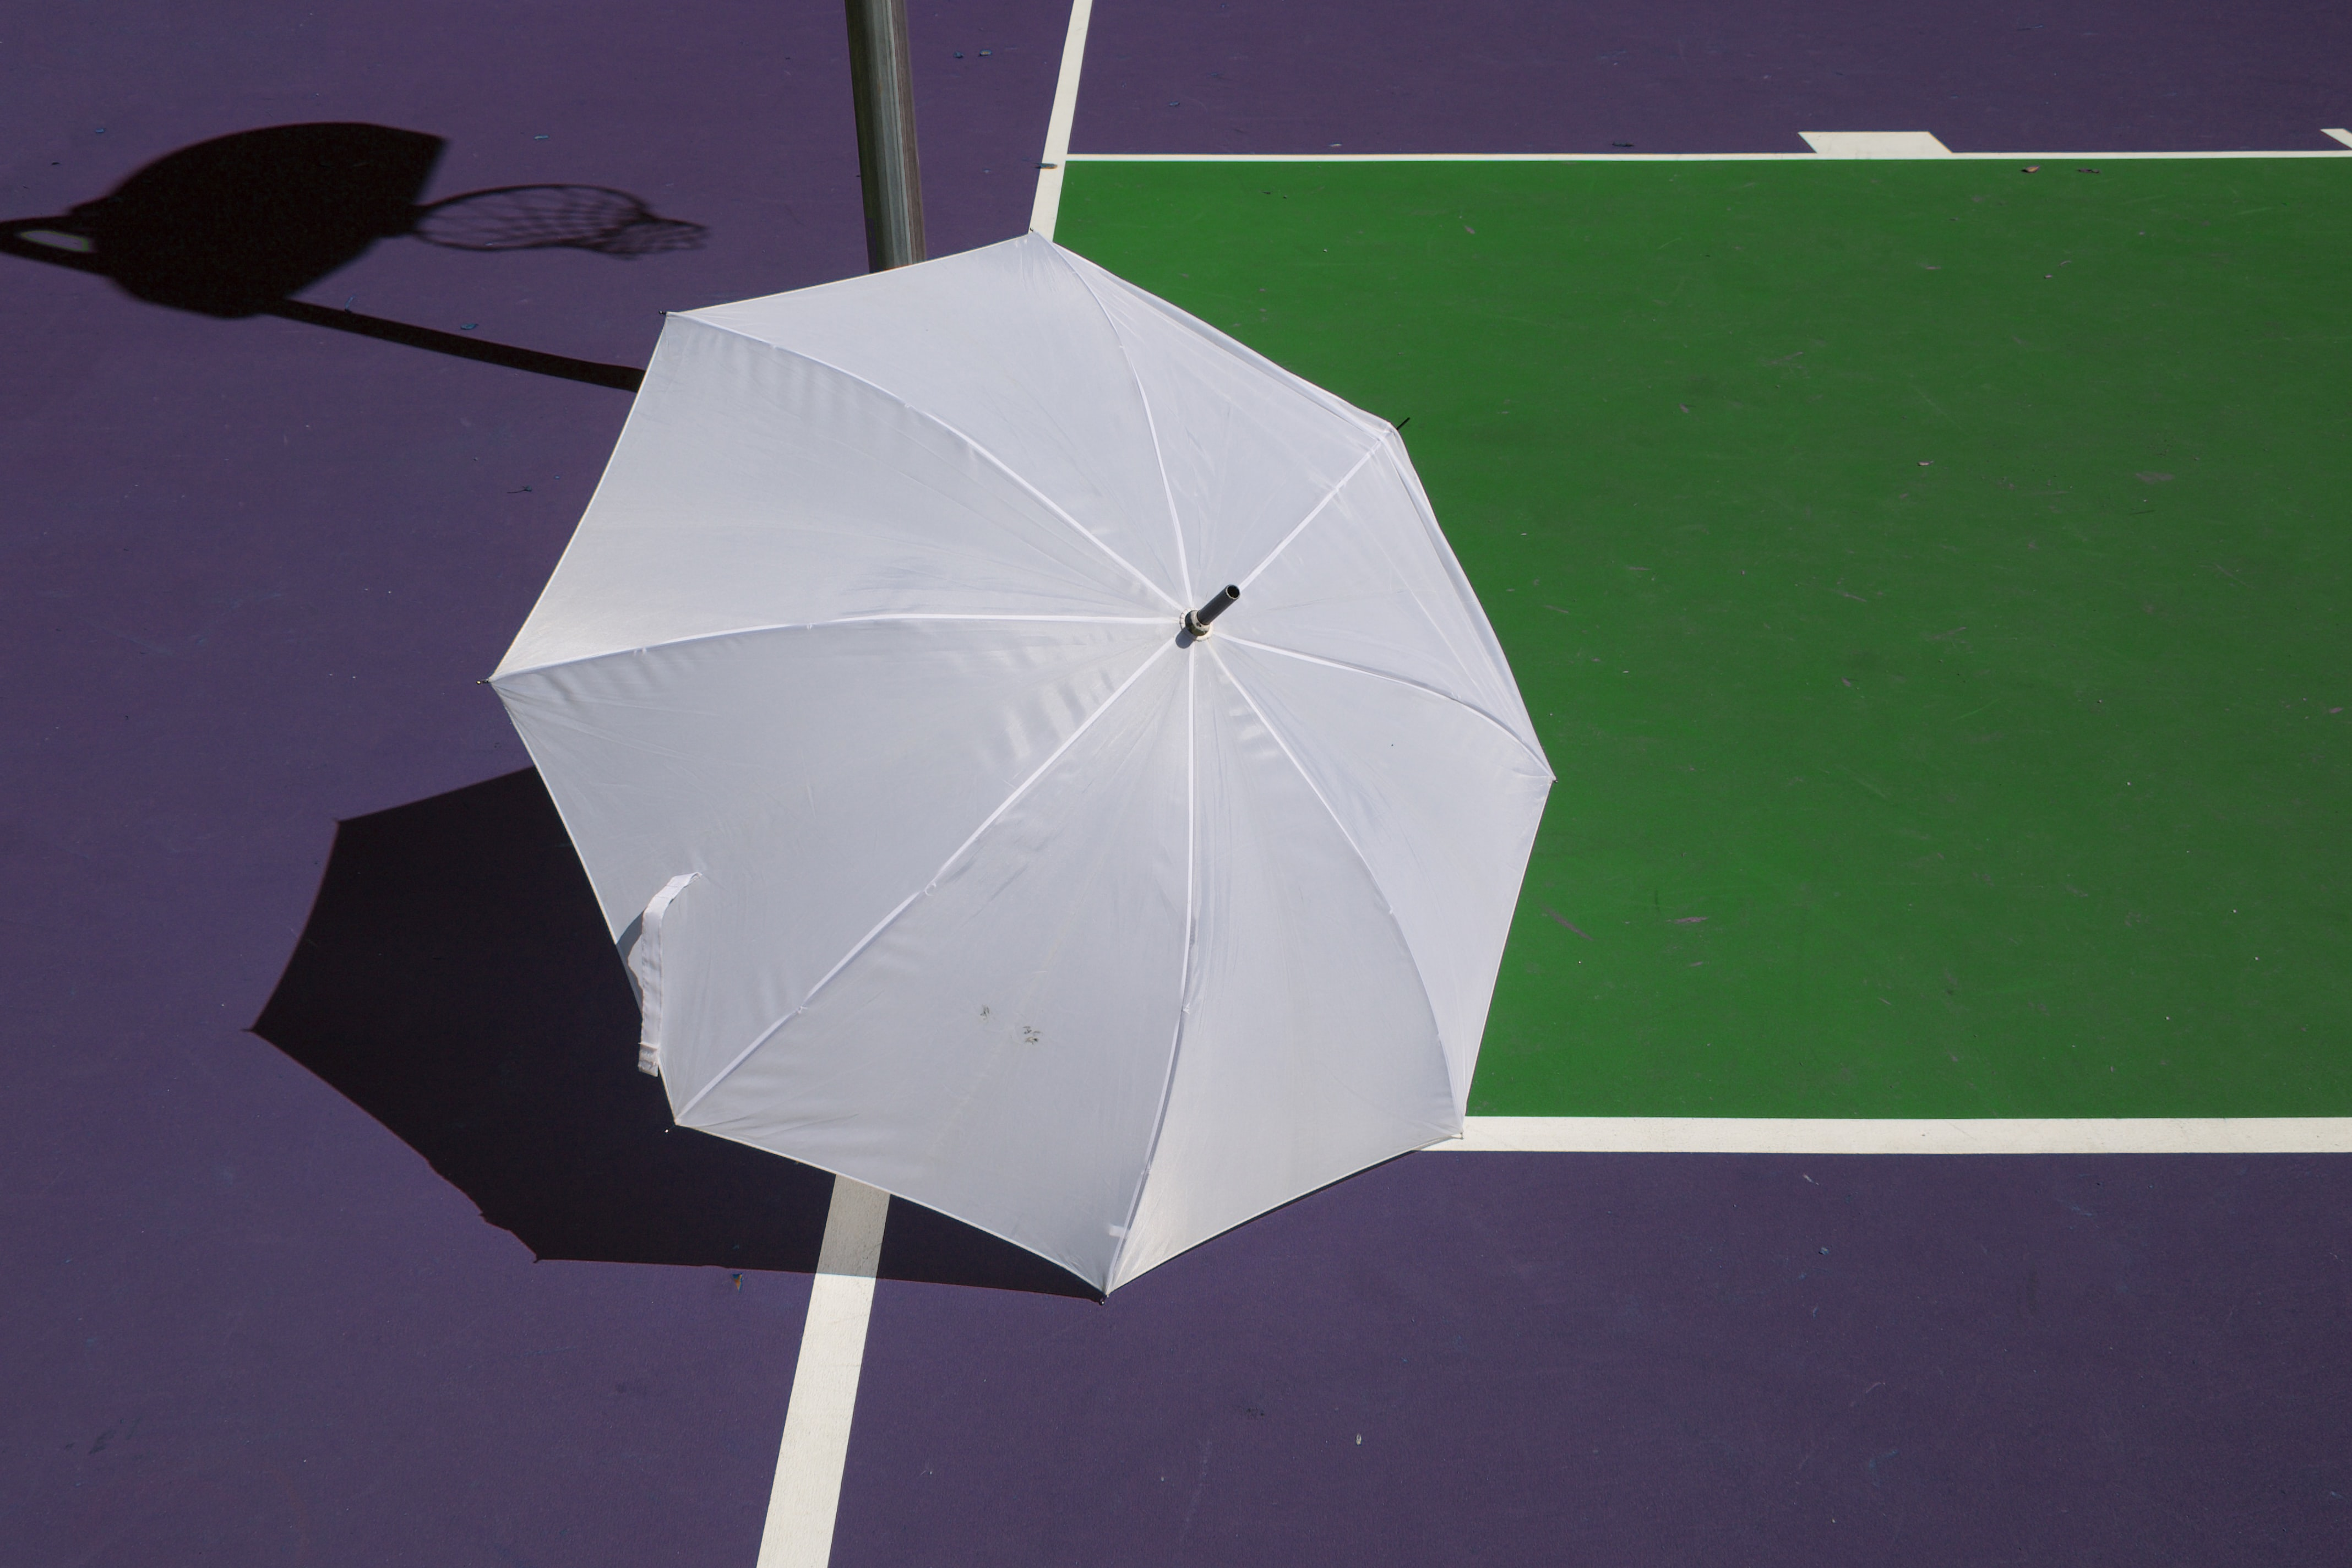 white umbrella purple surface